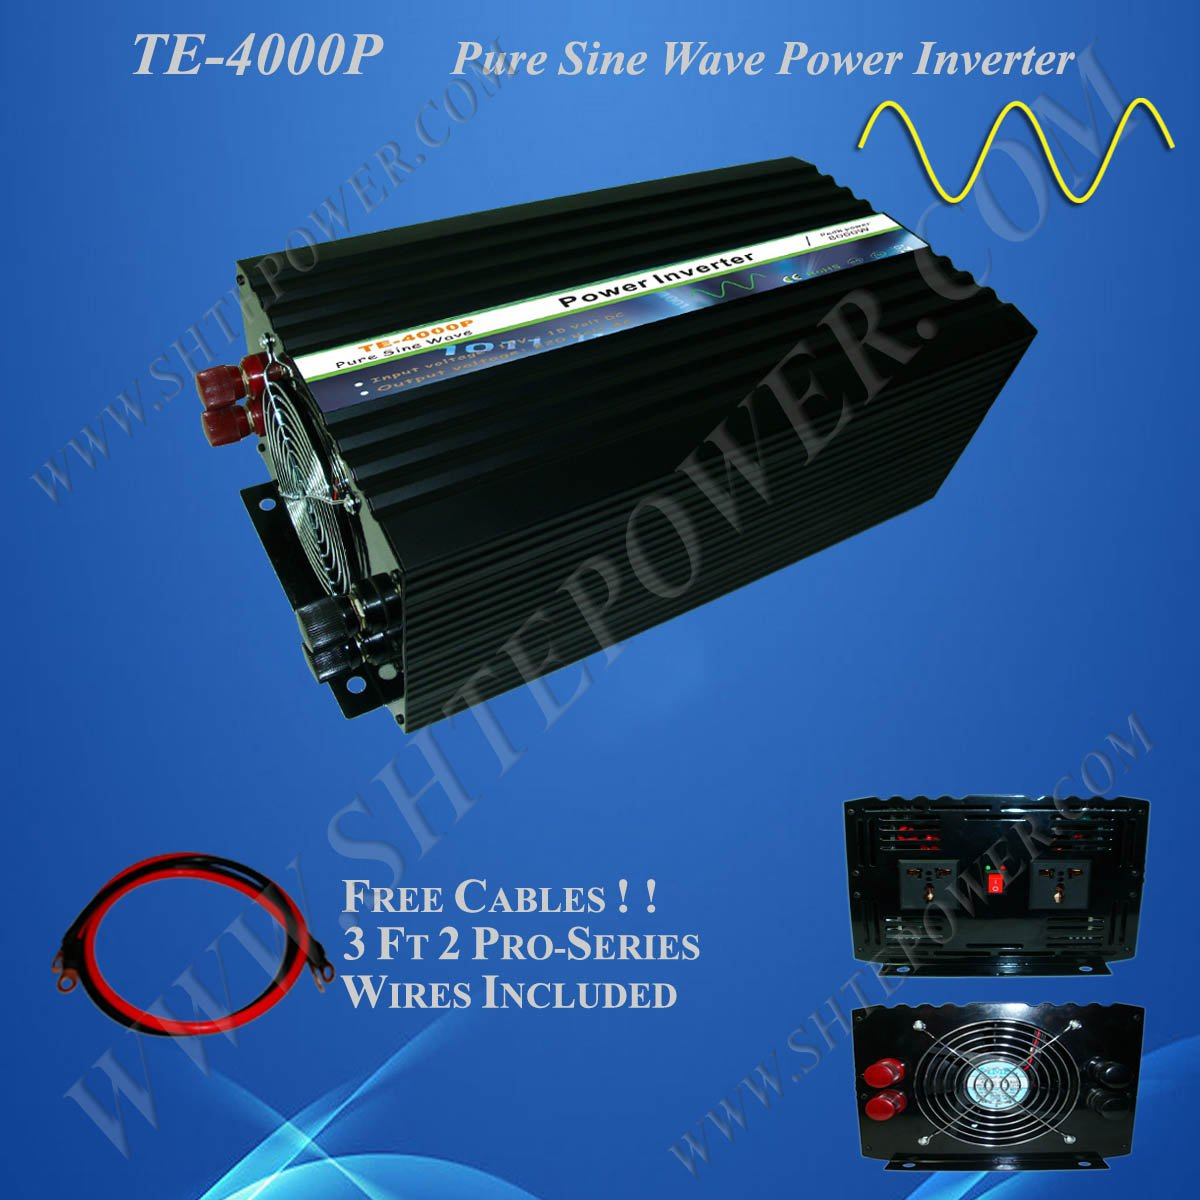 Power inverter DC 12v to AC 230v, 4000w pure sine wave power inverter, CE&RoHS Approved